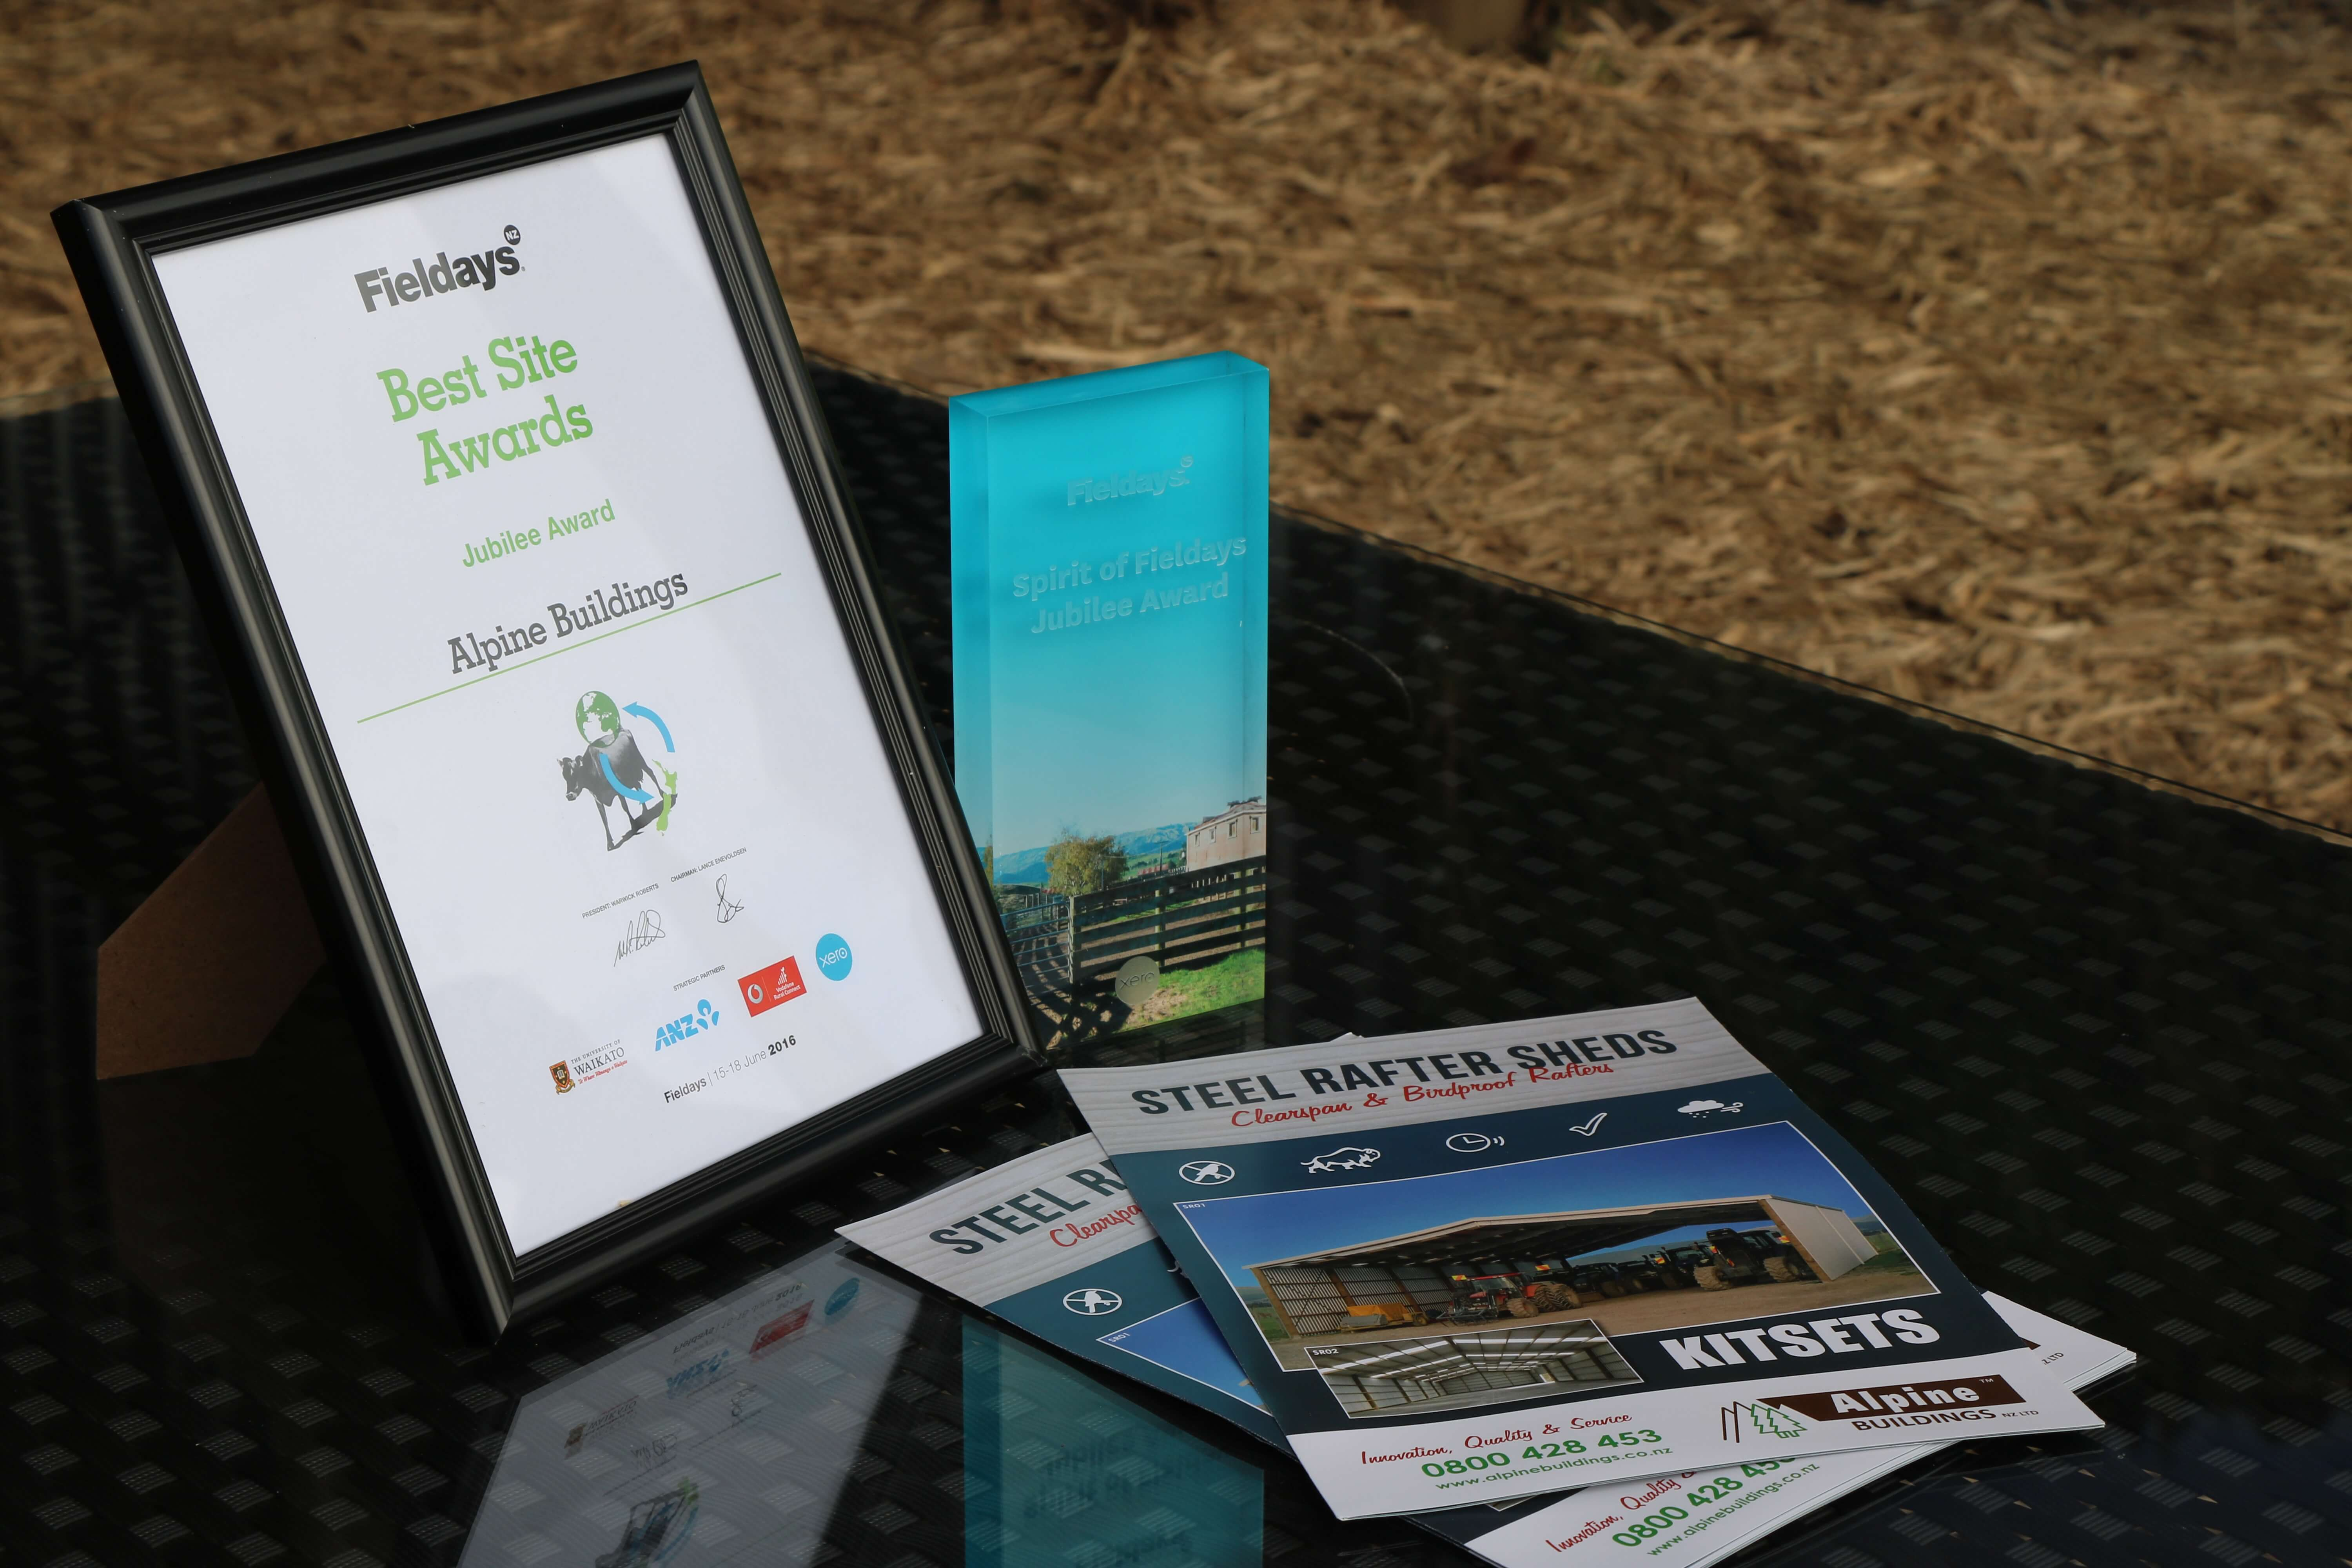 Alpine buildings wins best Fieldays site award